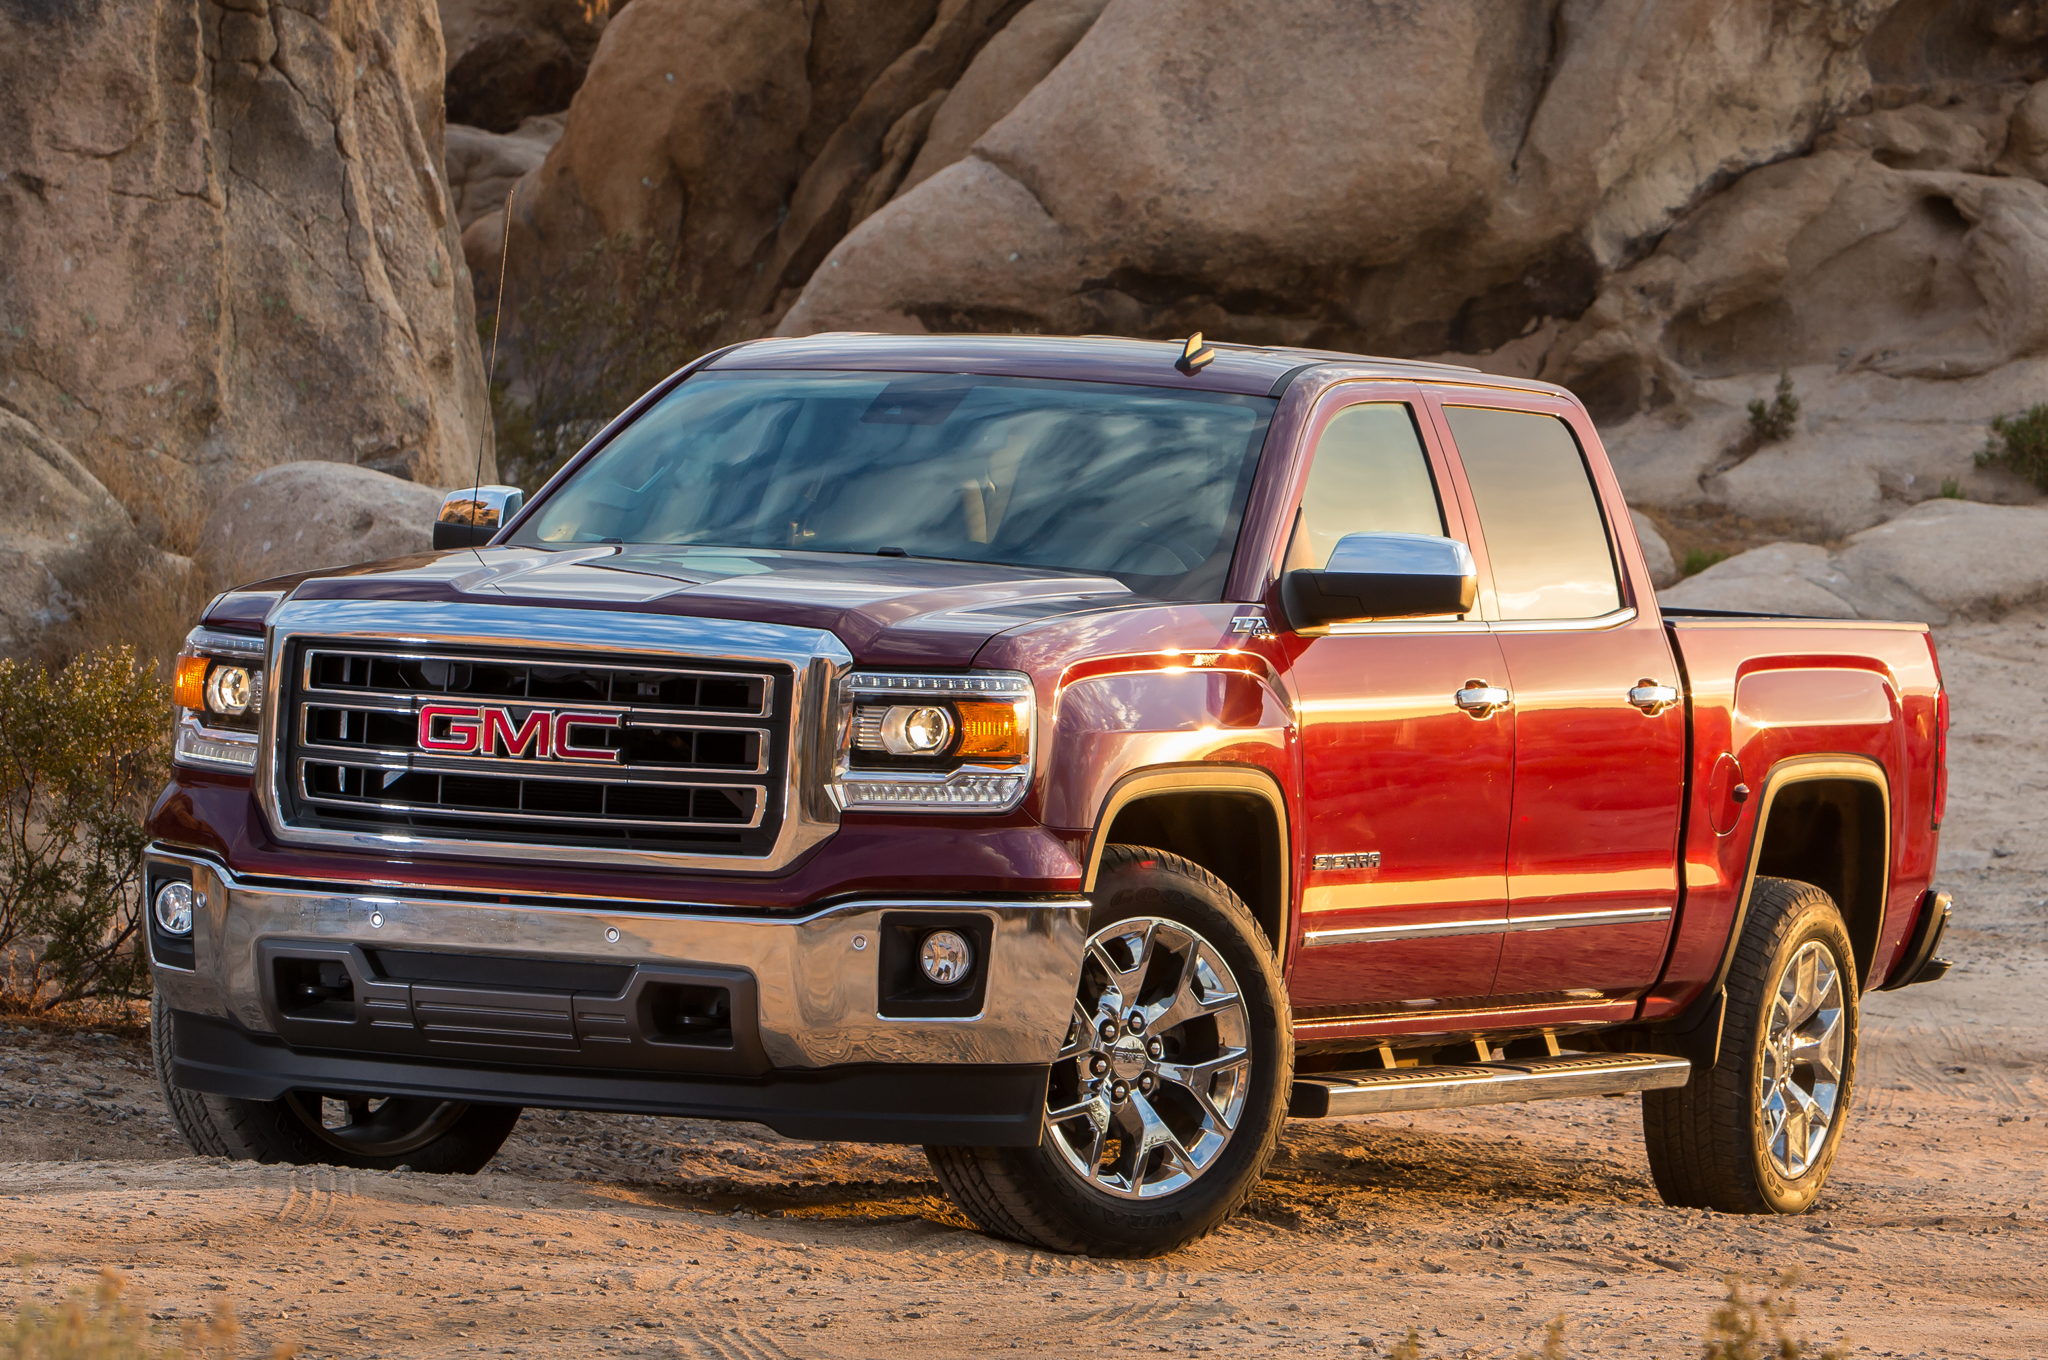 2019 Gmc Sierra 1500 Diesel Caught Underneath Two Diesel